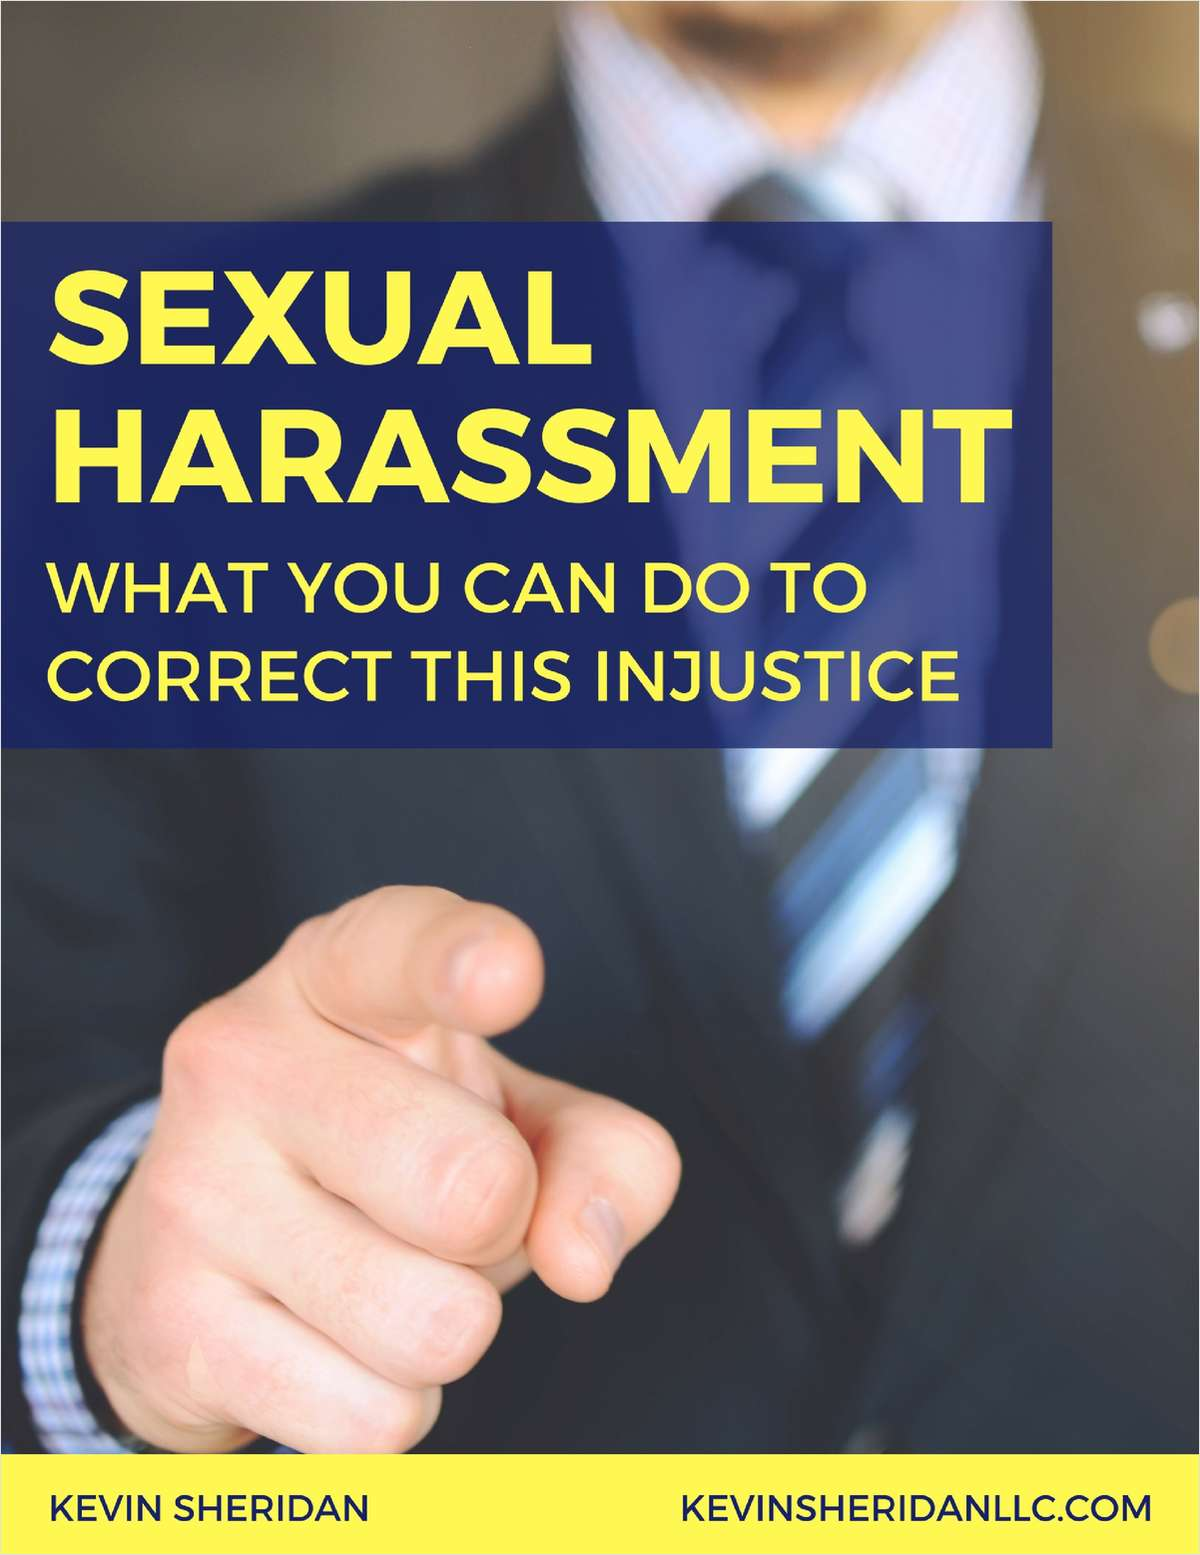 Sexual Harassment - What You Can Do to Correct This Injustice